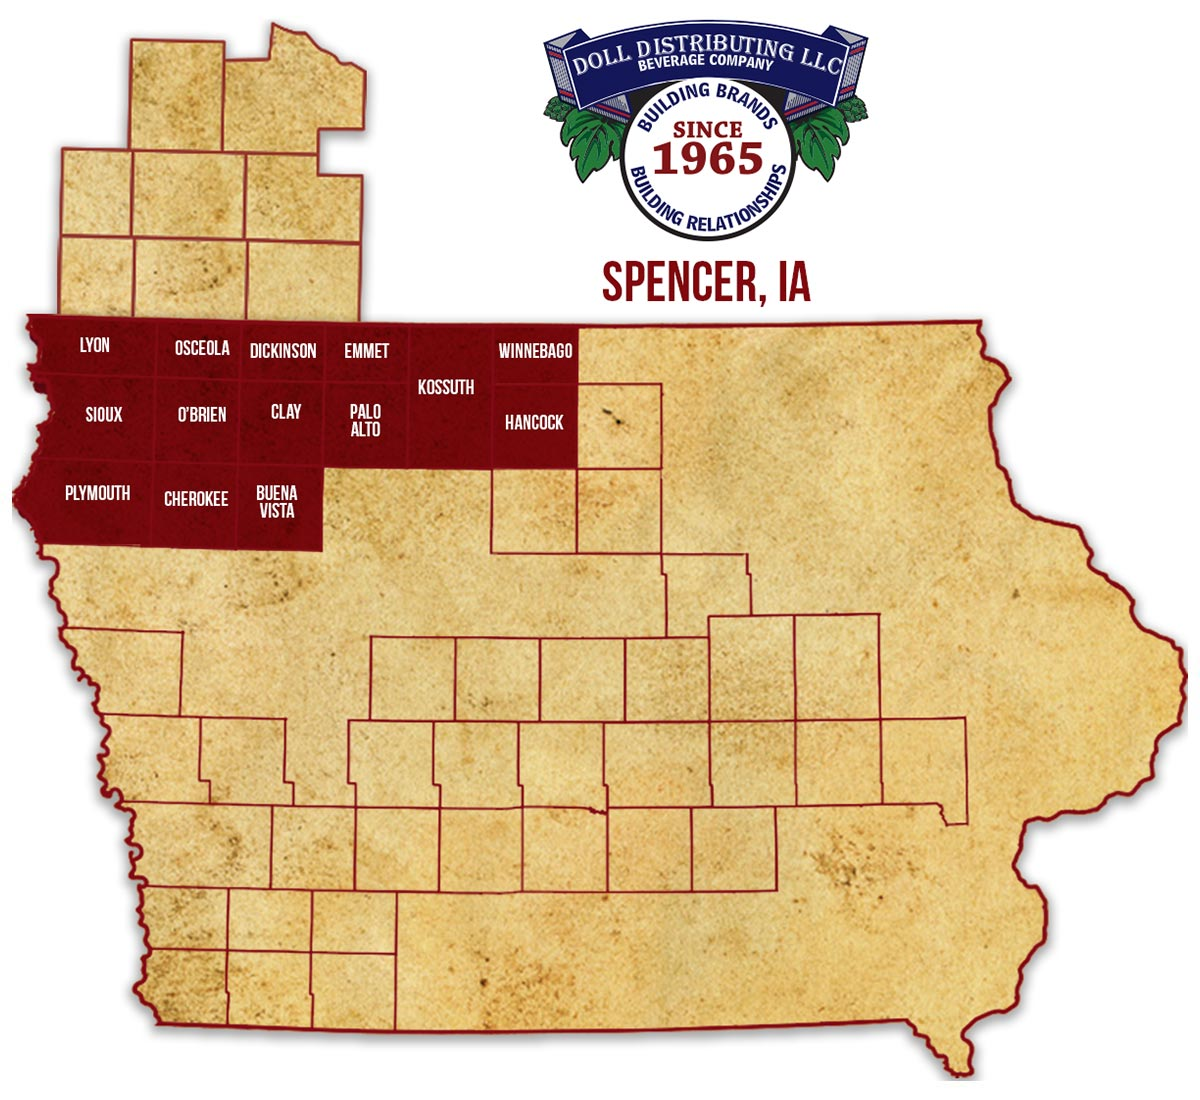 Spencer, Iowa